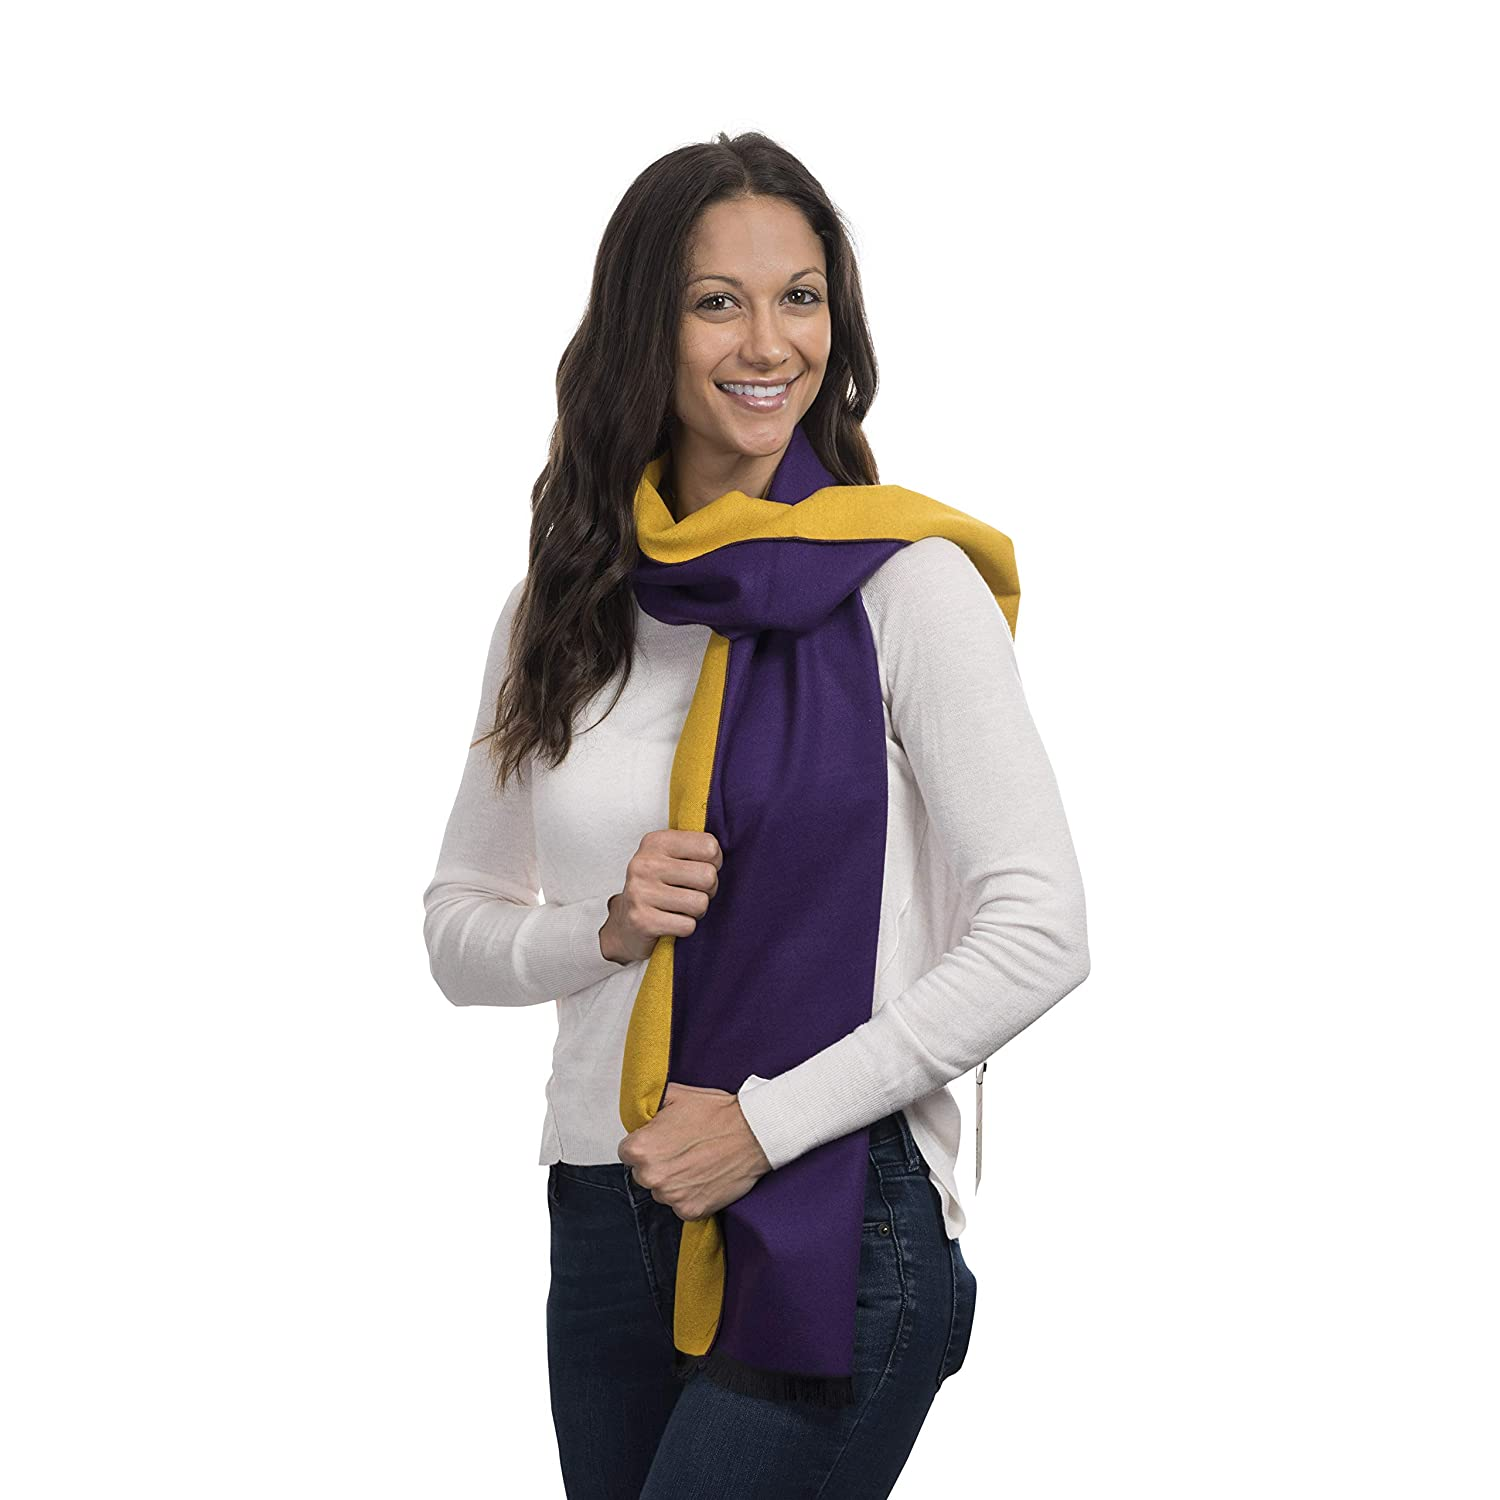 Purple & Yellow Cashmere&Class TwoTone Cashmere Scarf Reversible Trendy Warm Winter Wear, Women, Men